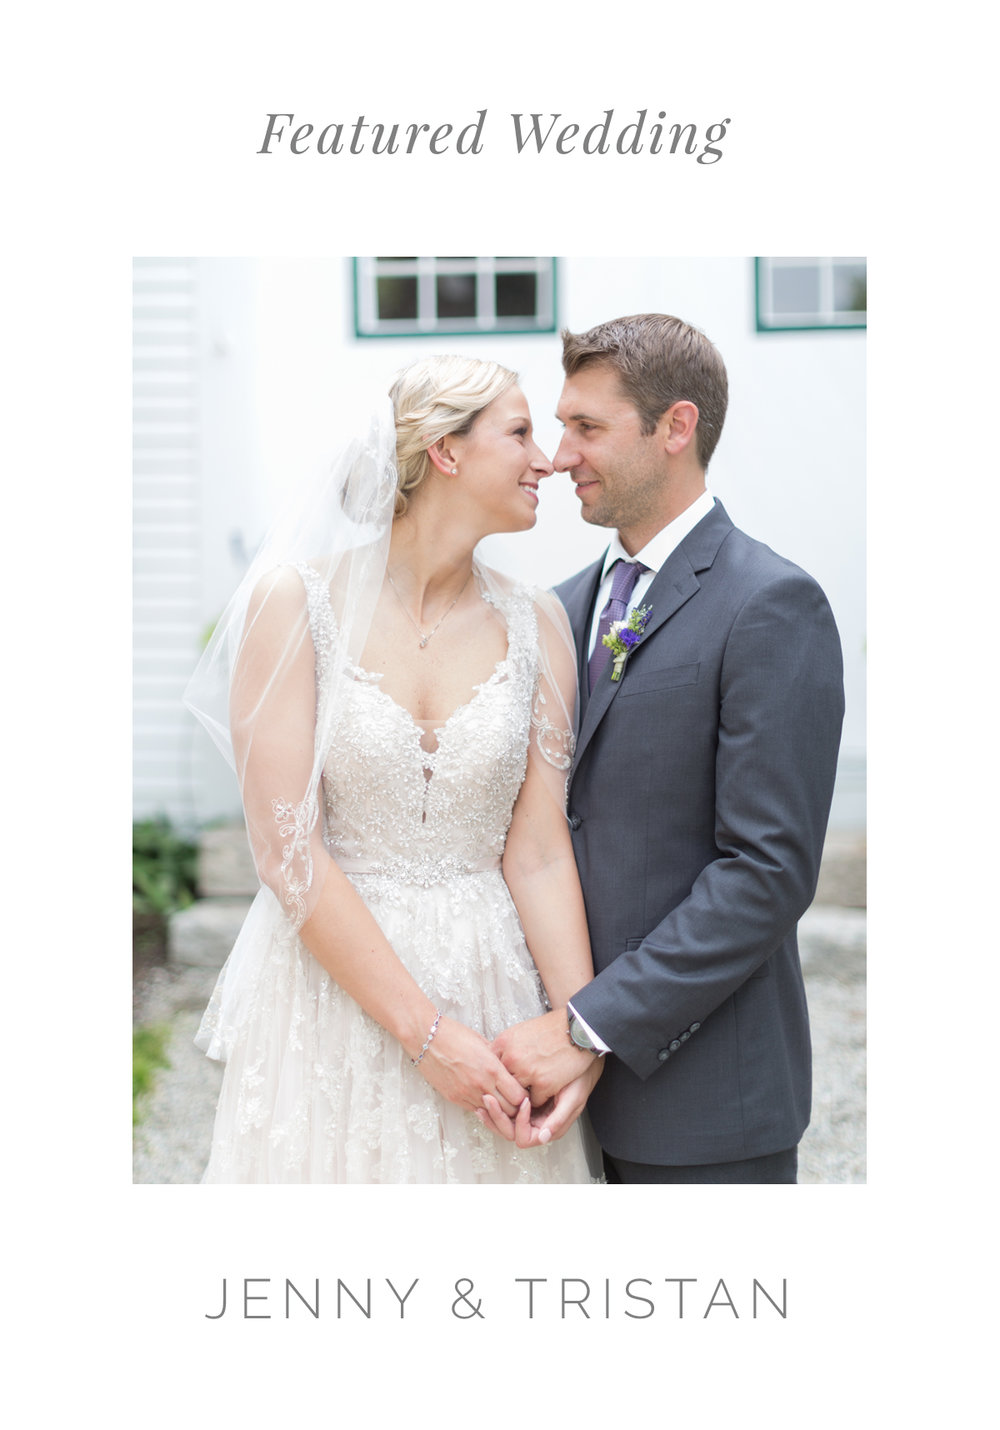 featured wedding Jenny and Tristan.jpg